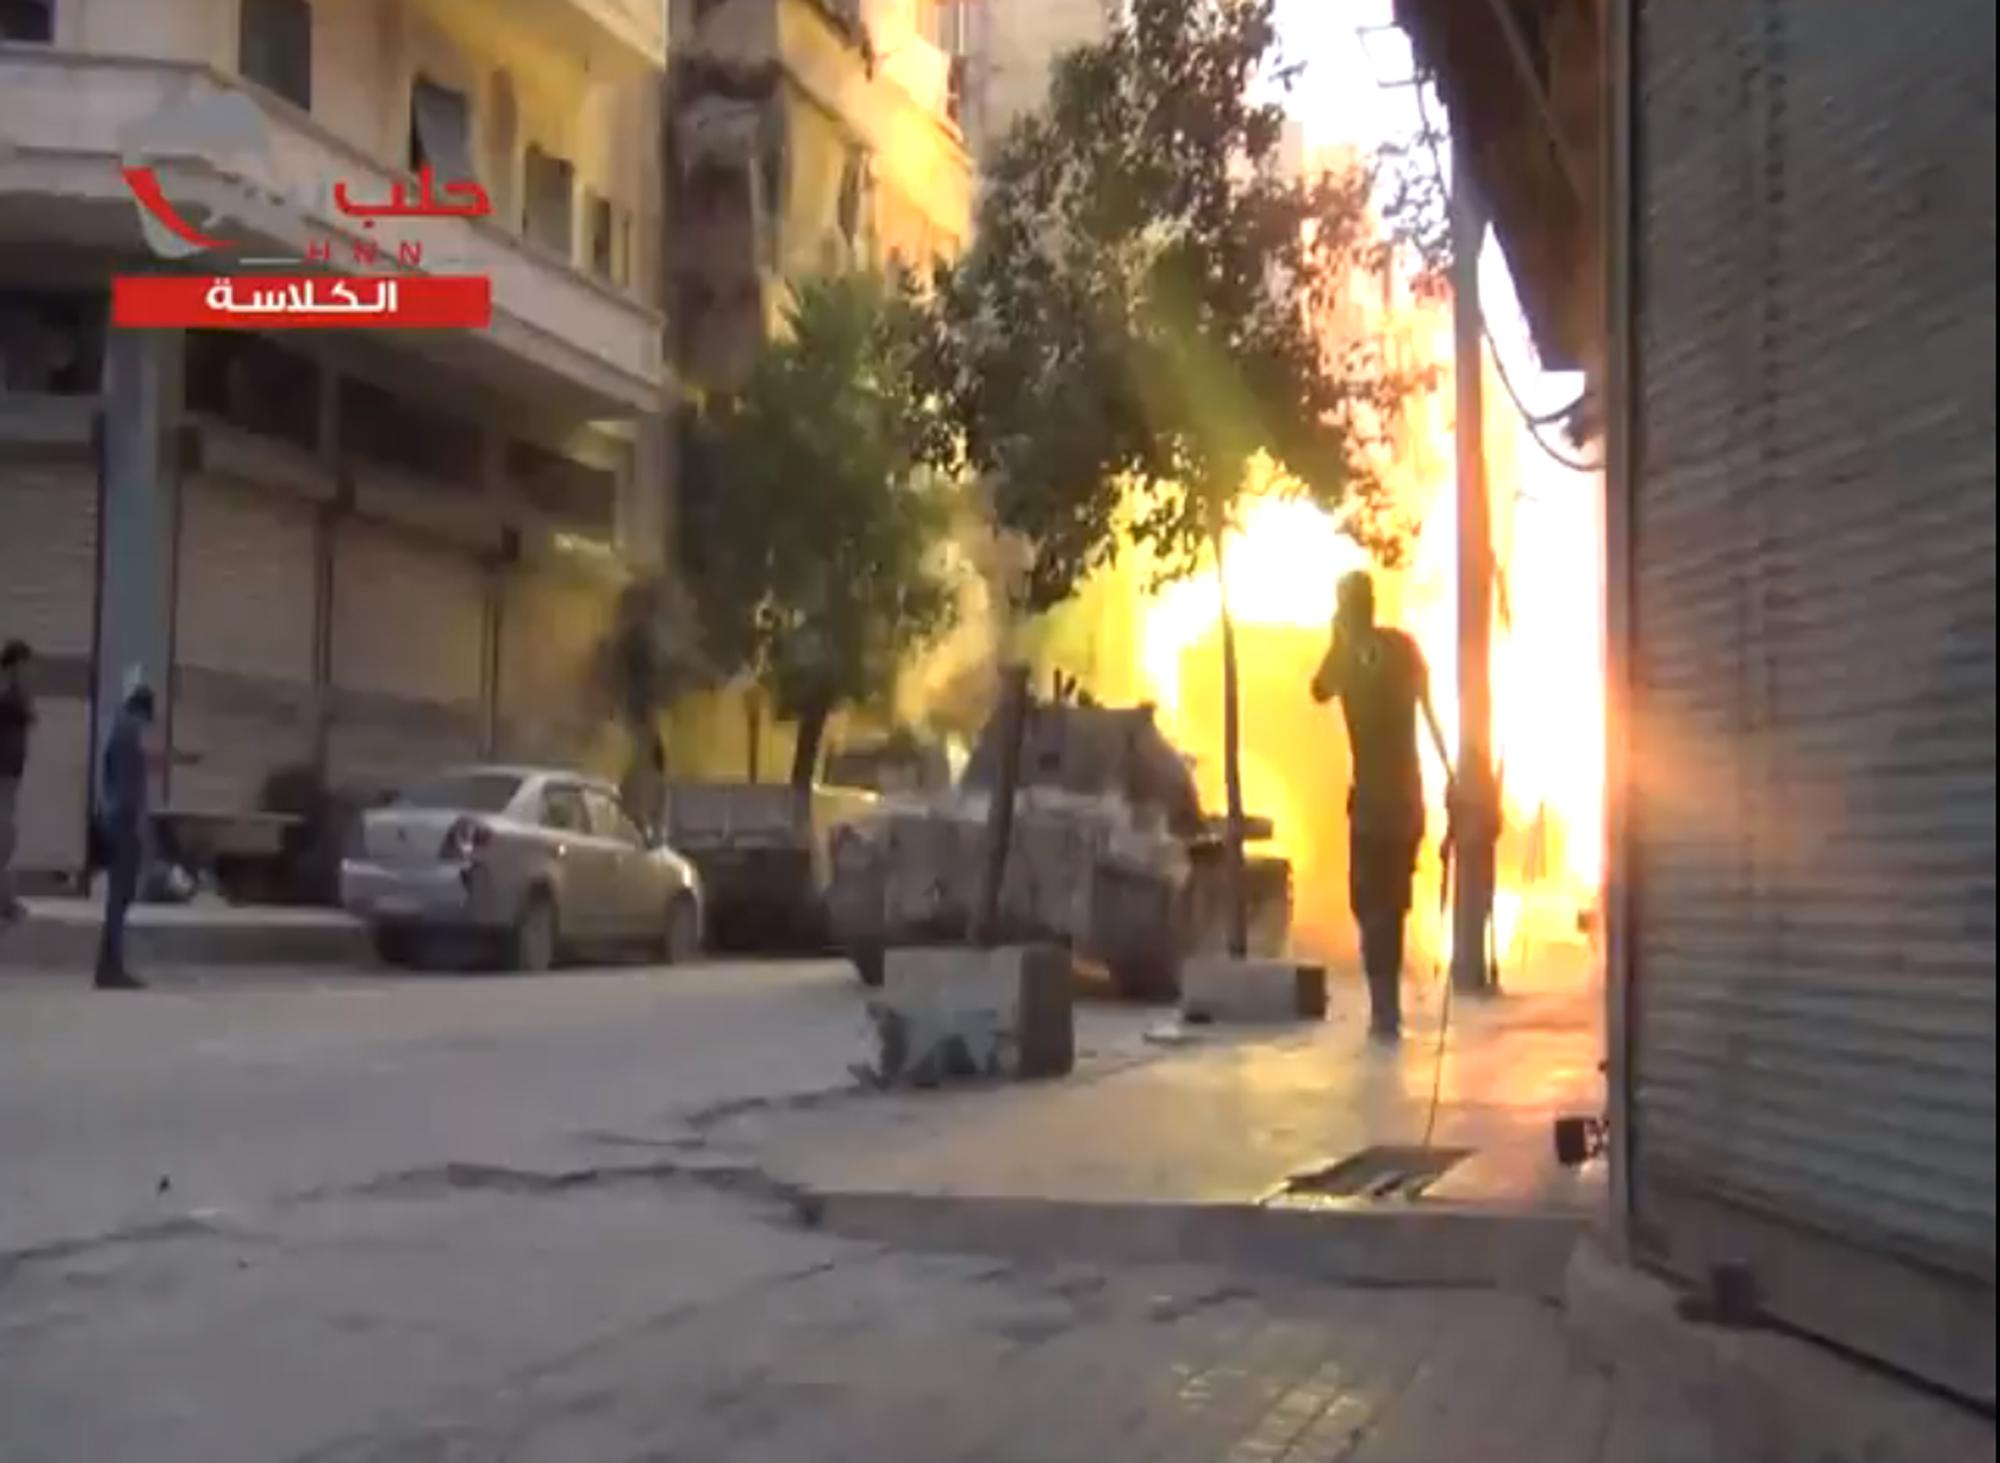 """In this image taken from video obtained from the Shaam News Network, which has been authenticated based on its contents and other AP reporting, fighters from the Free Syrian Army targets one of the bastions of the regime's forces with tank fire, Monday July 22, 2013. Syrian rebels seized a strategic village on the edge of the northern city of Aleppo on Monday, activists said, just hours after other opposition fighters sustained some of their heaviest losses in months in battles to the south near the capital, Damascus. Logo reads, """"Aleppo News – al-Kalasa."""" (AP Photo/Shaam News Network via AP video)"""